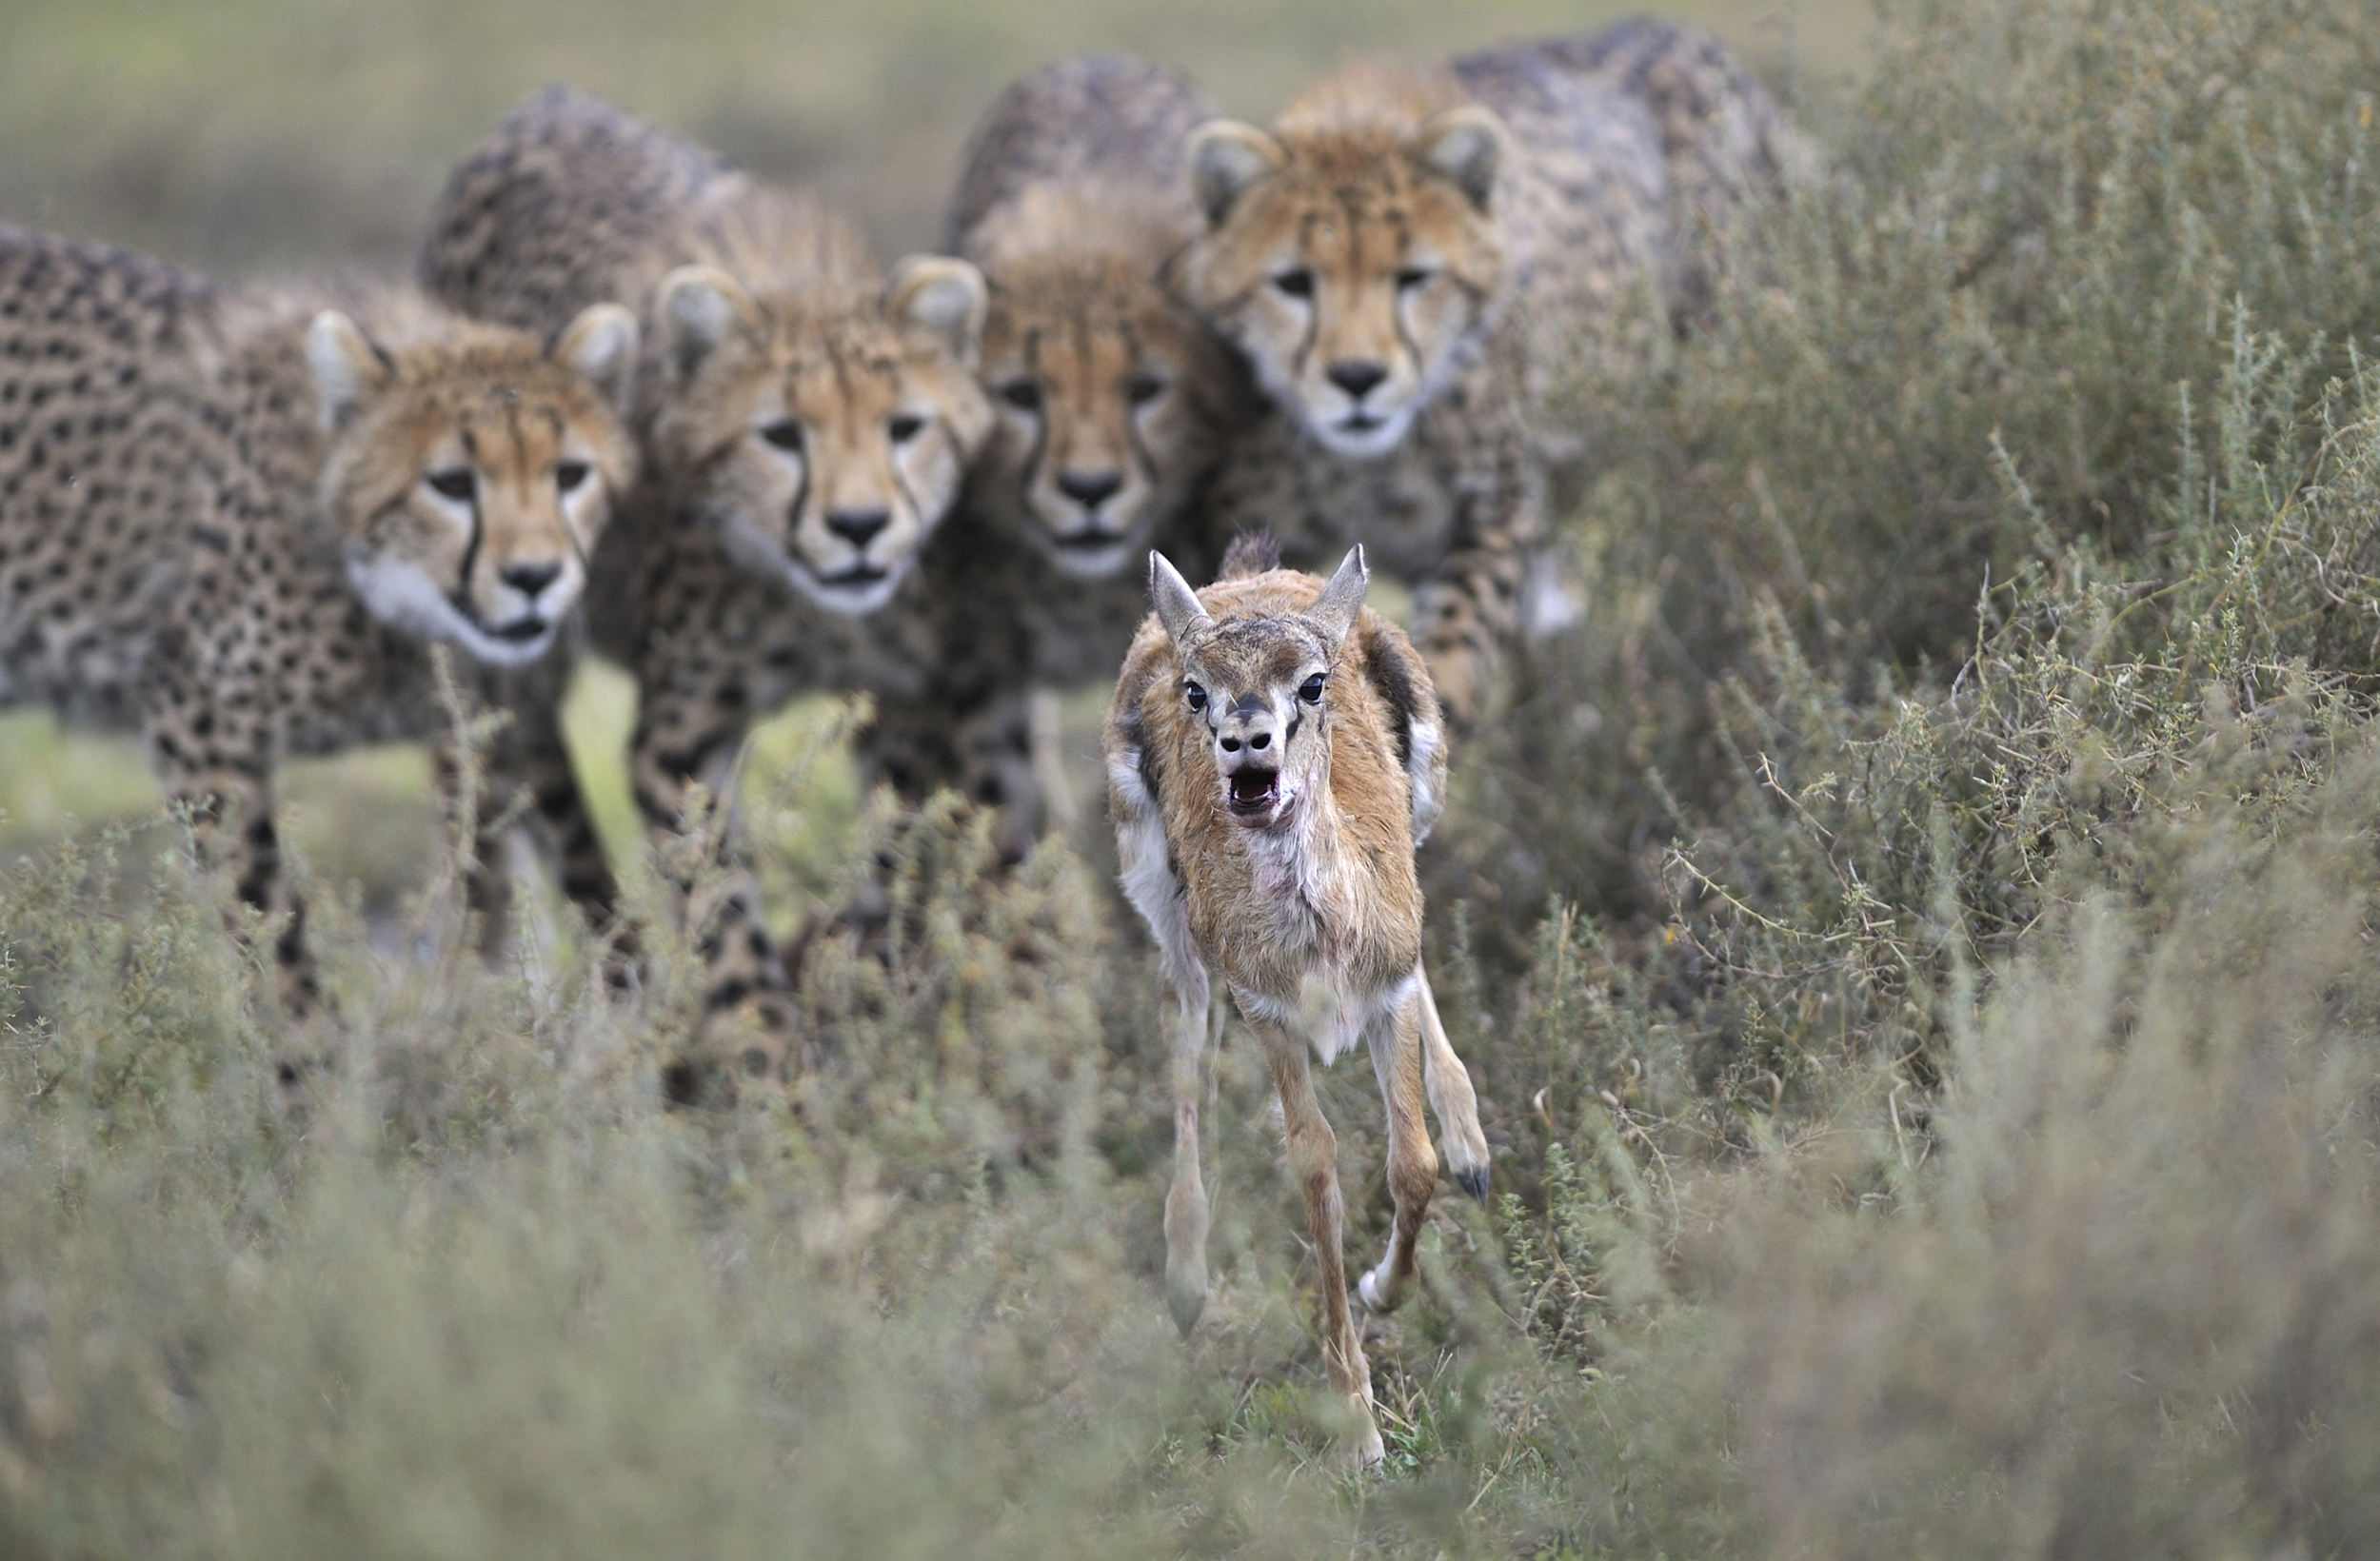 Winner, Behavior Mammals -- Cheetah cubs engage in hunting practice with a wounded Thomson's gazelle calf in Serengeti National Park, Tanzania.